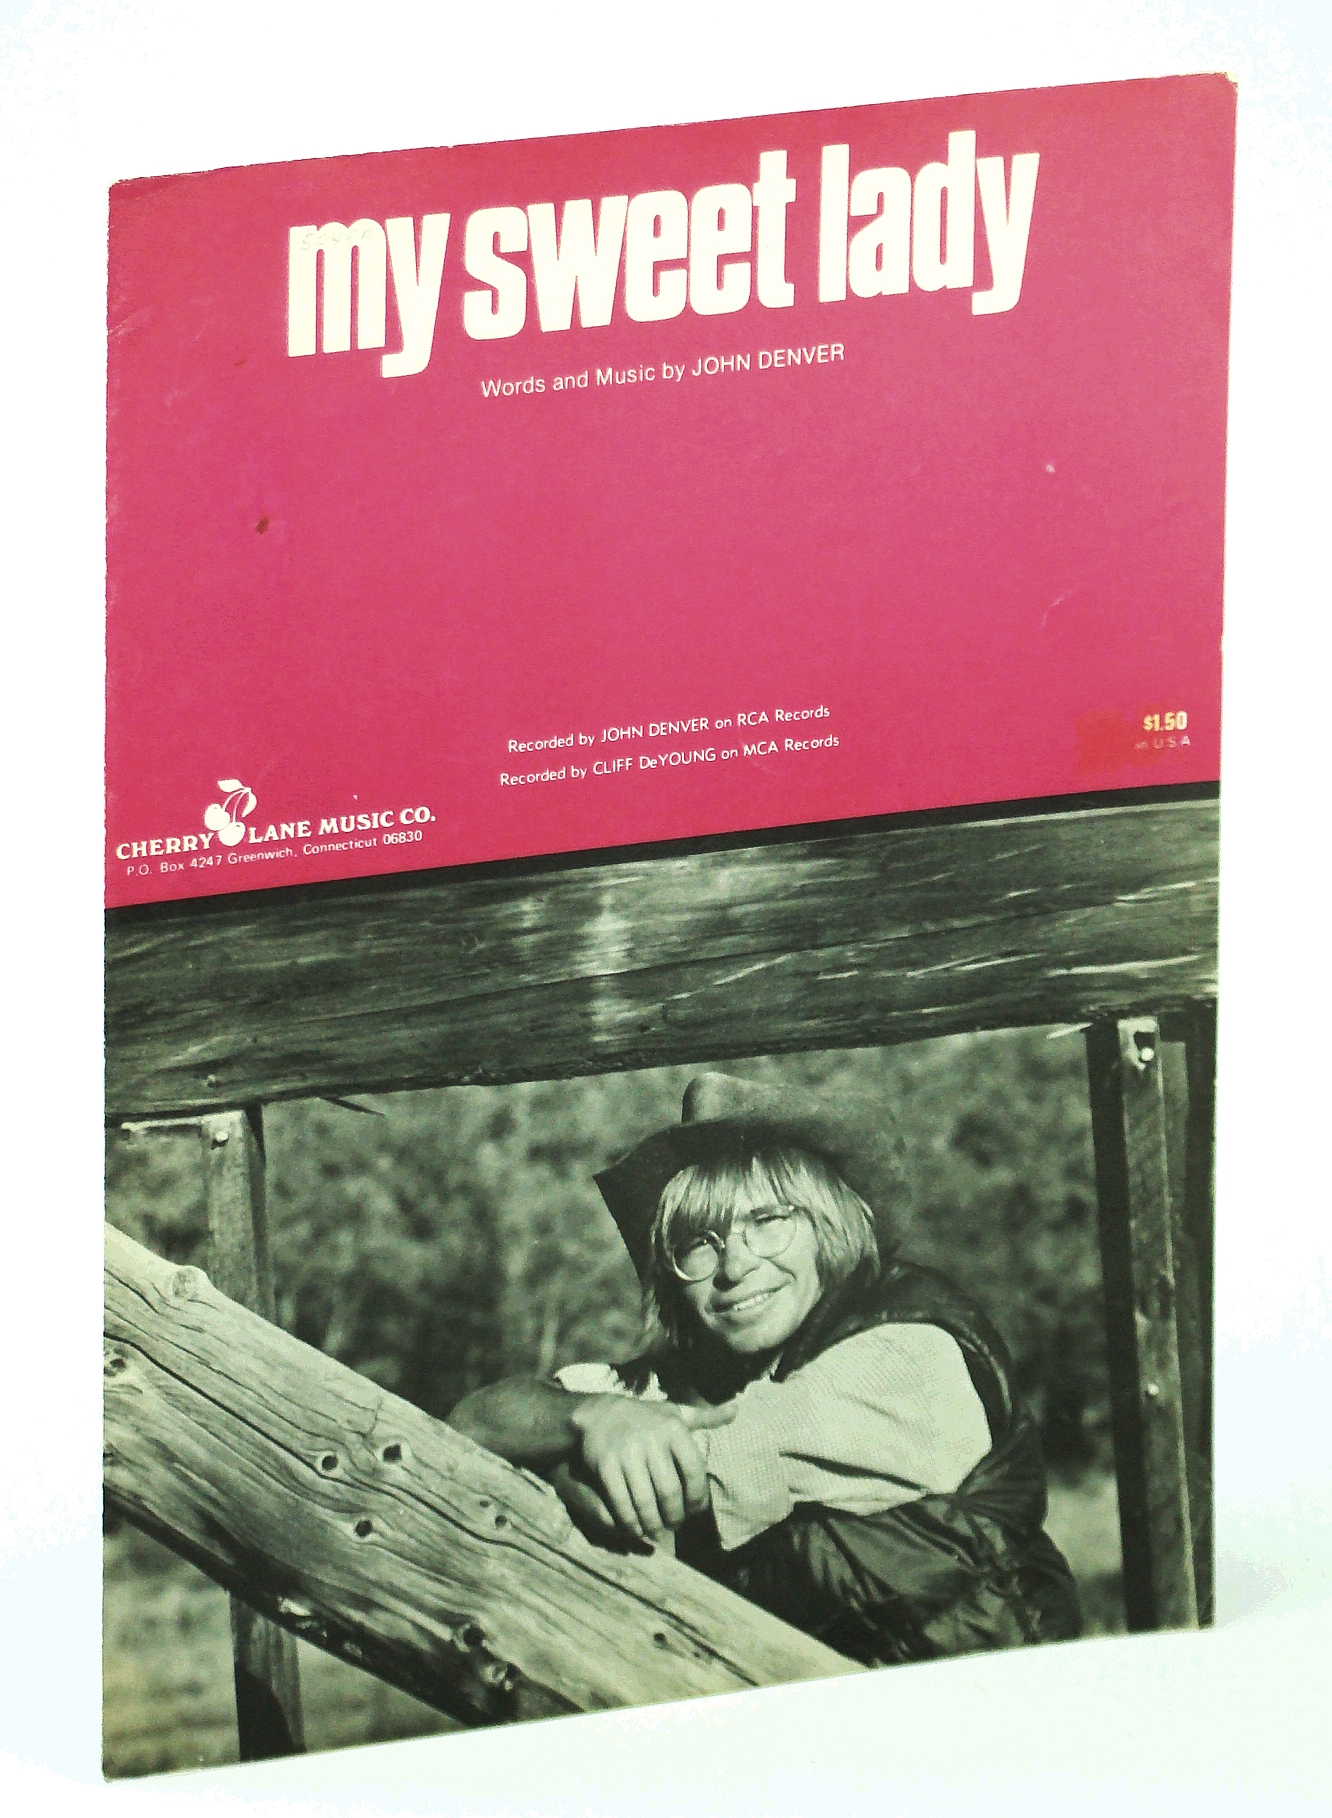 Image for My Sweet Lady By John Denver Sheet music